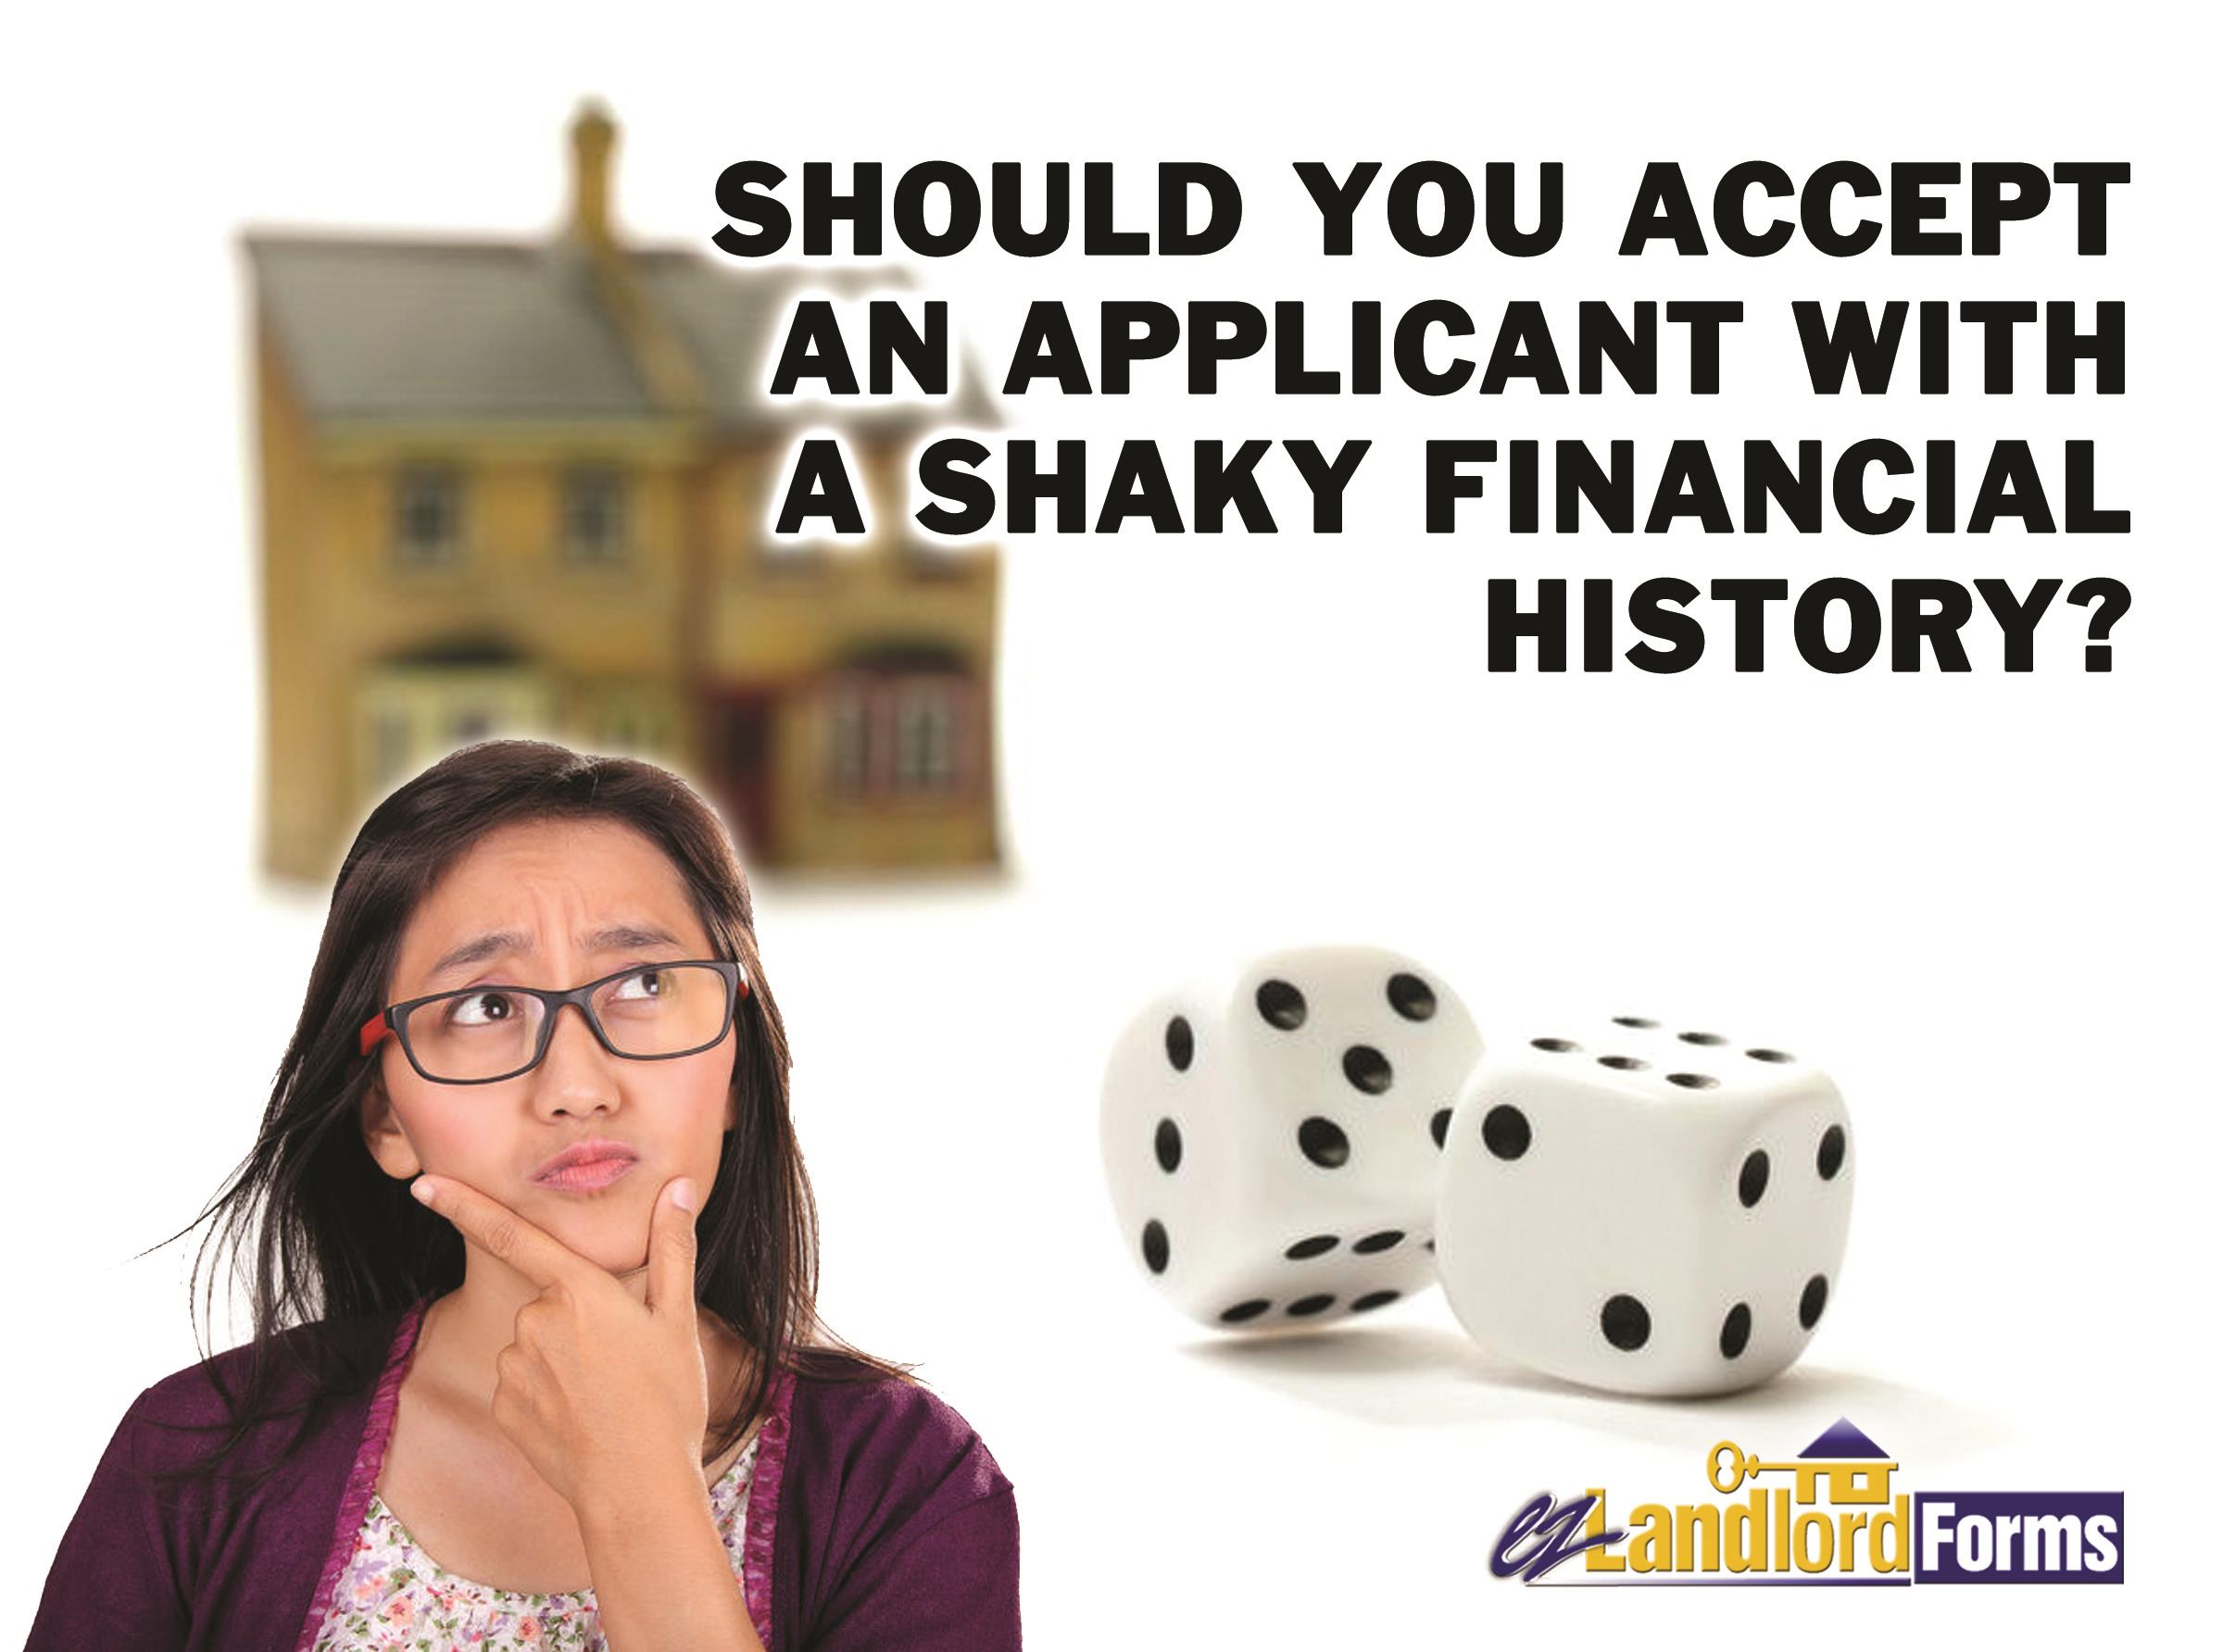 Should_You_Accept_an_Applicant_With_a_Shaky_Financial_History